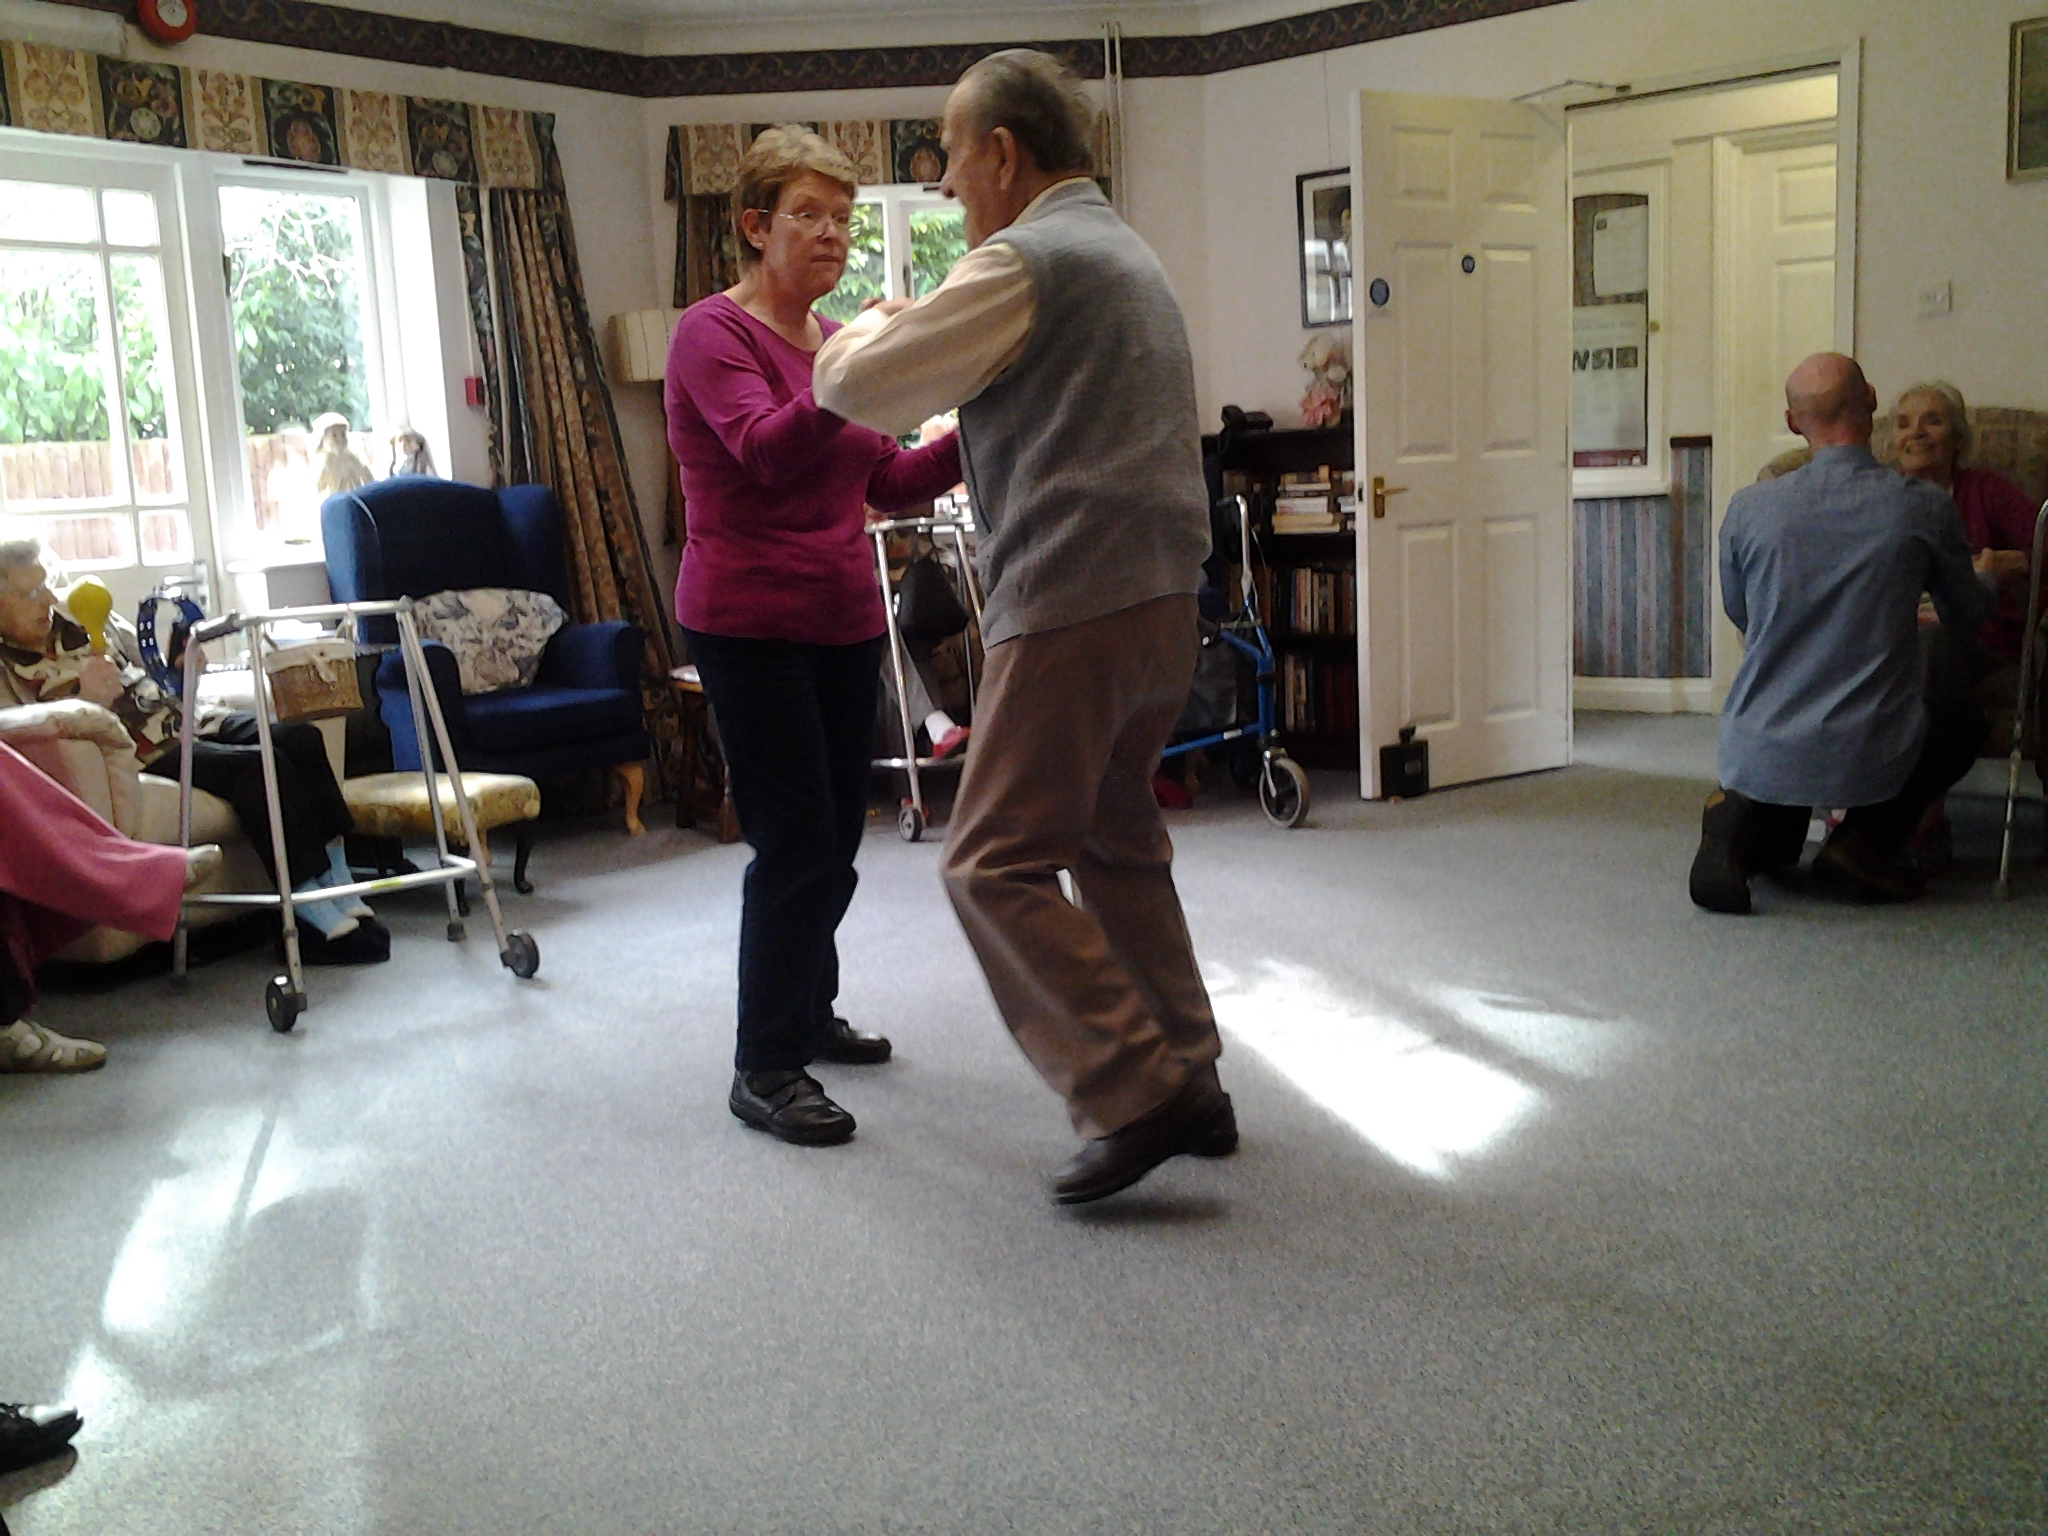 Dancing Activies At Abbey Dean